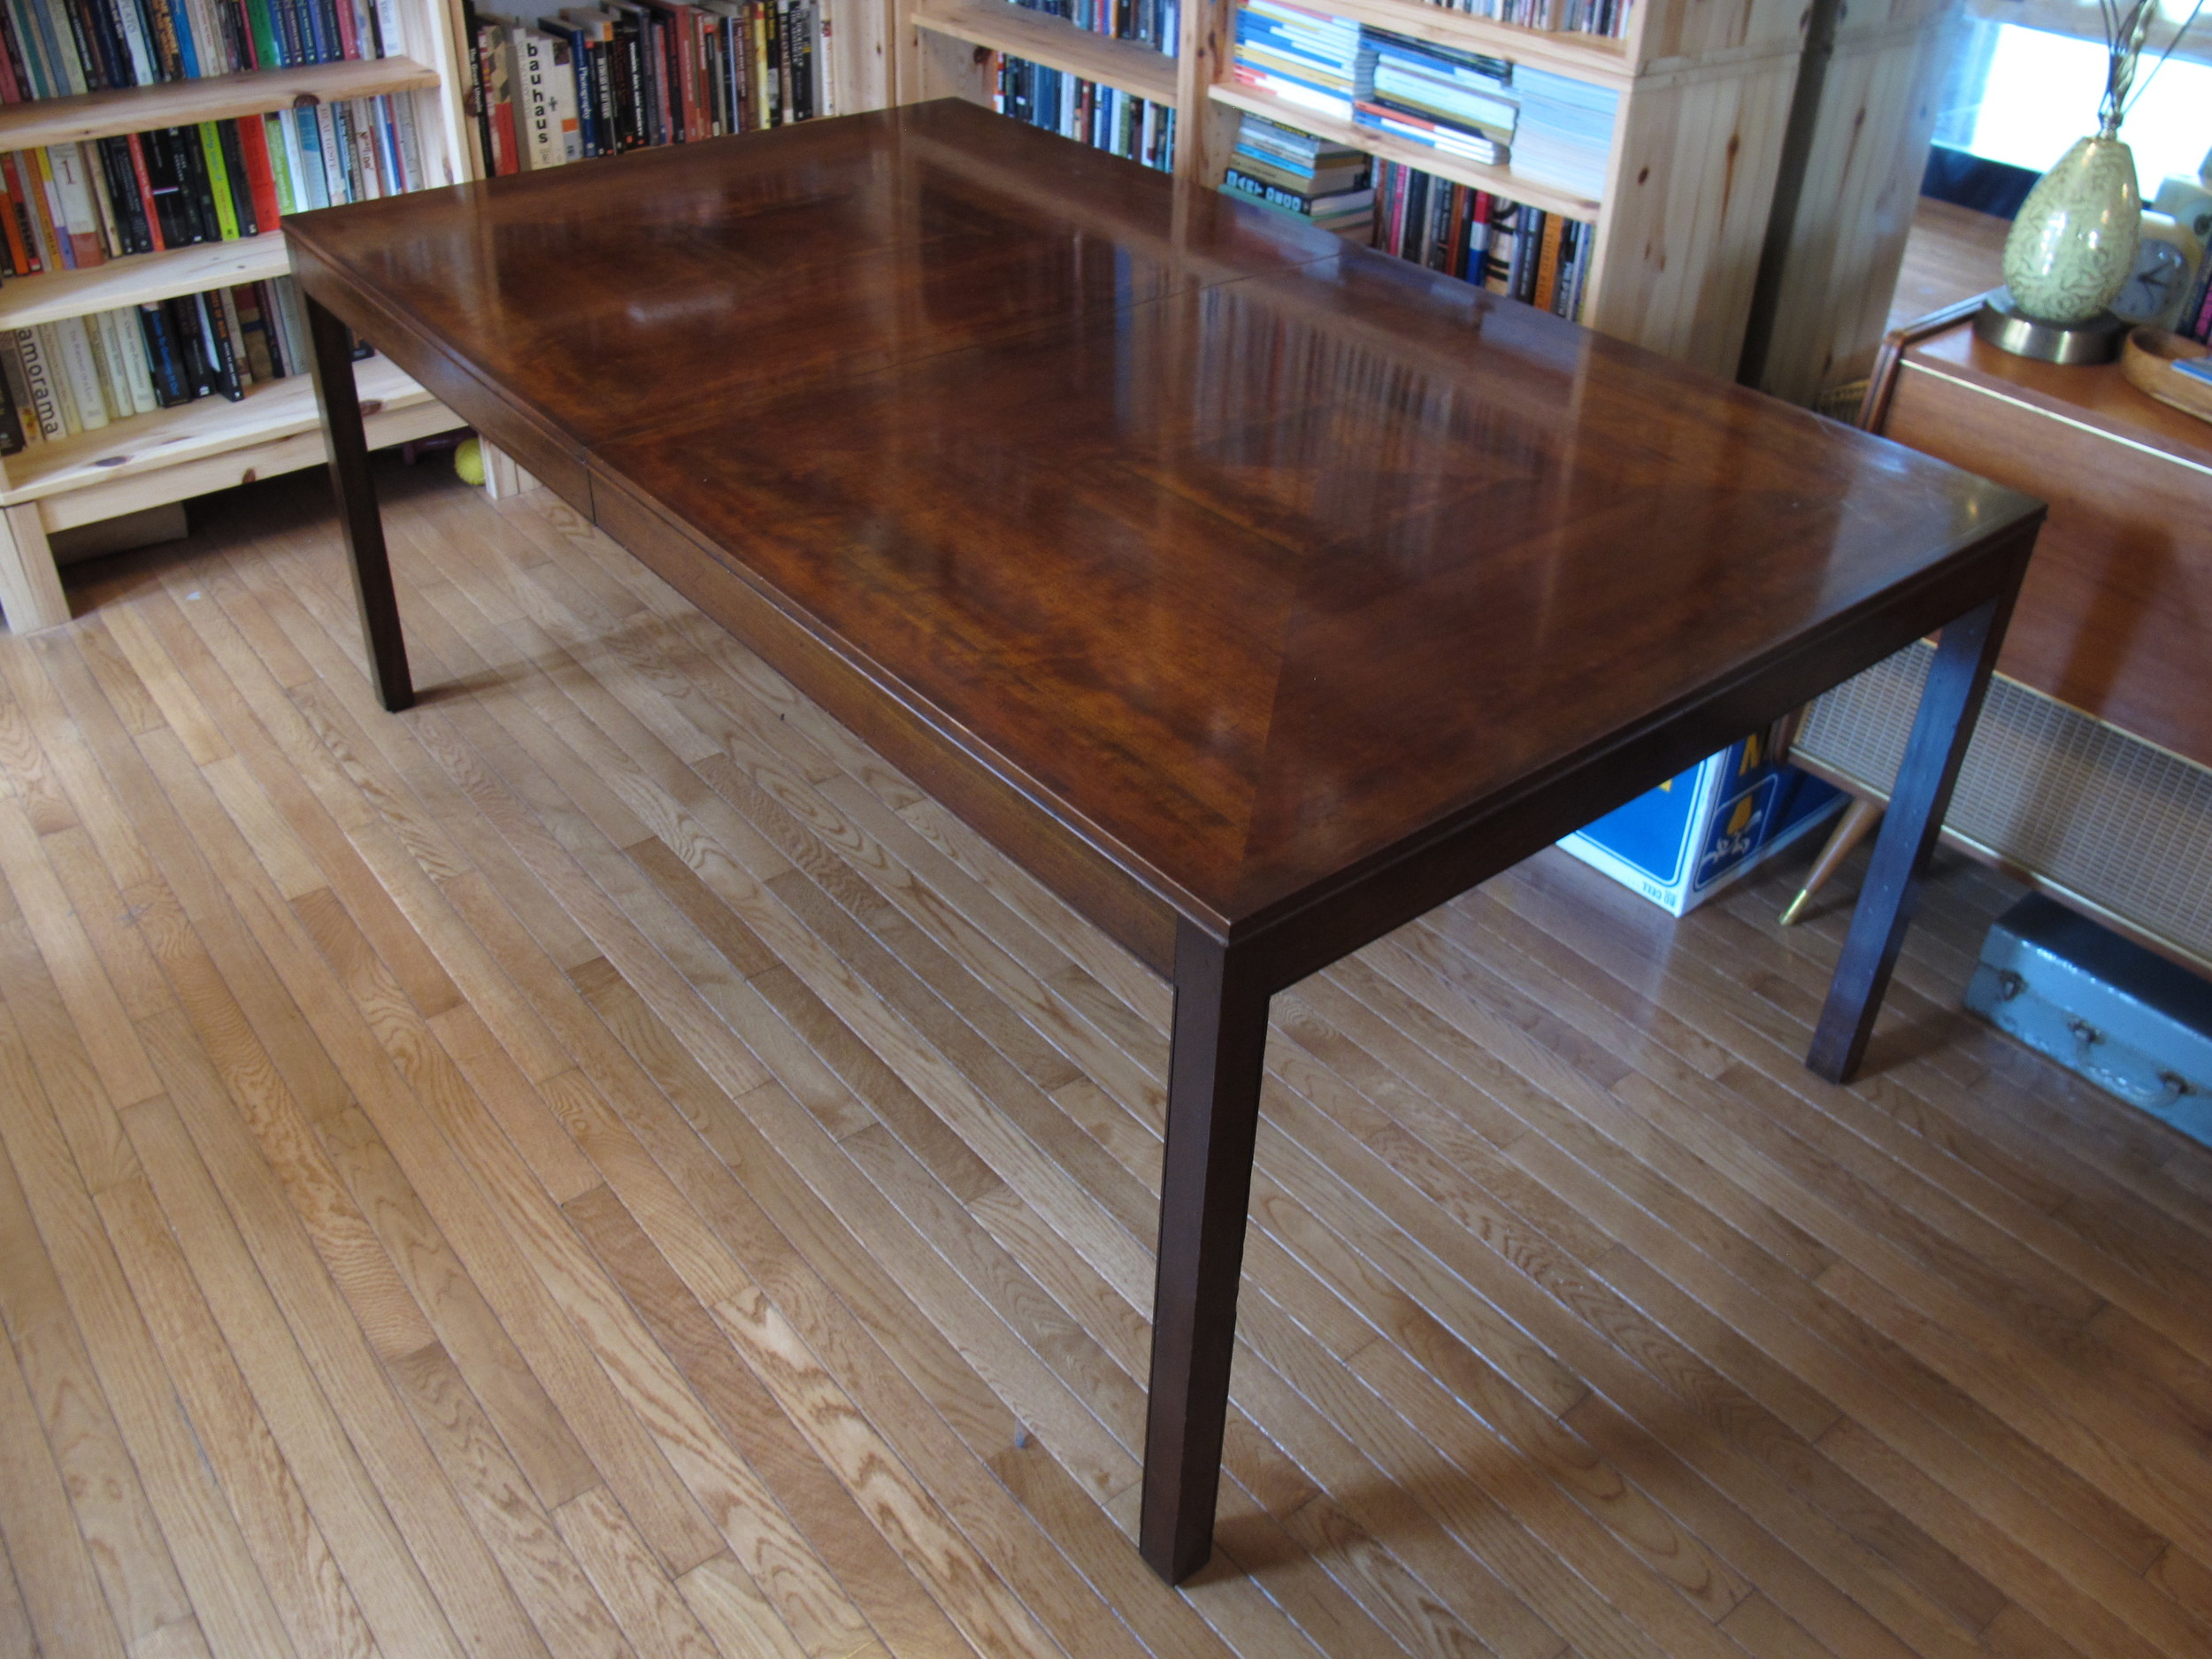 MILO BAUGHMAN DINING TABLE BY JOHNSON FURNITURE